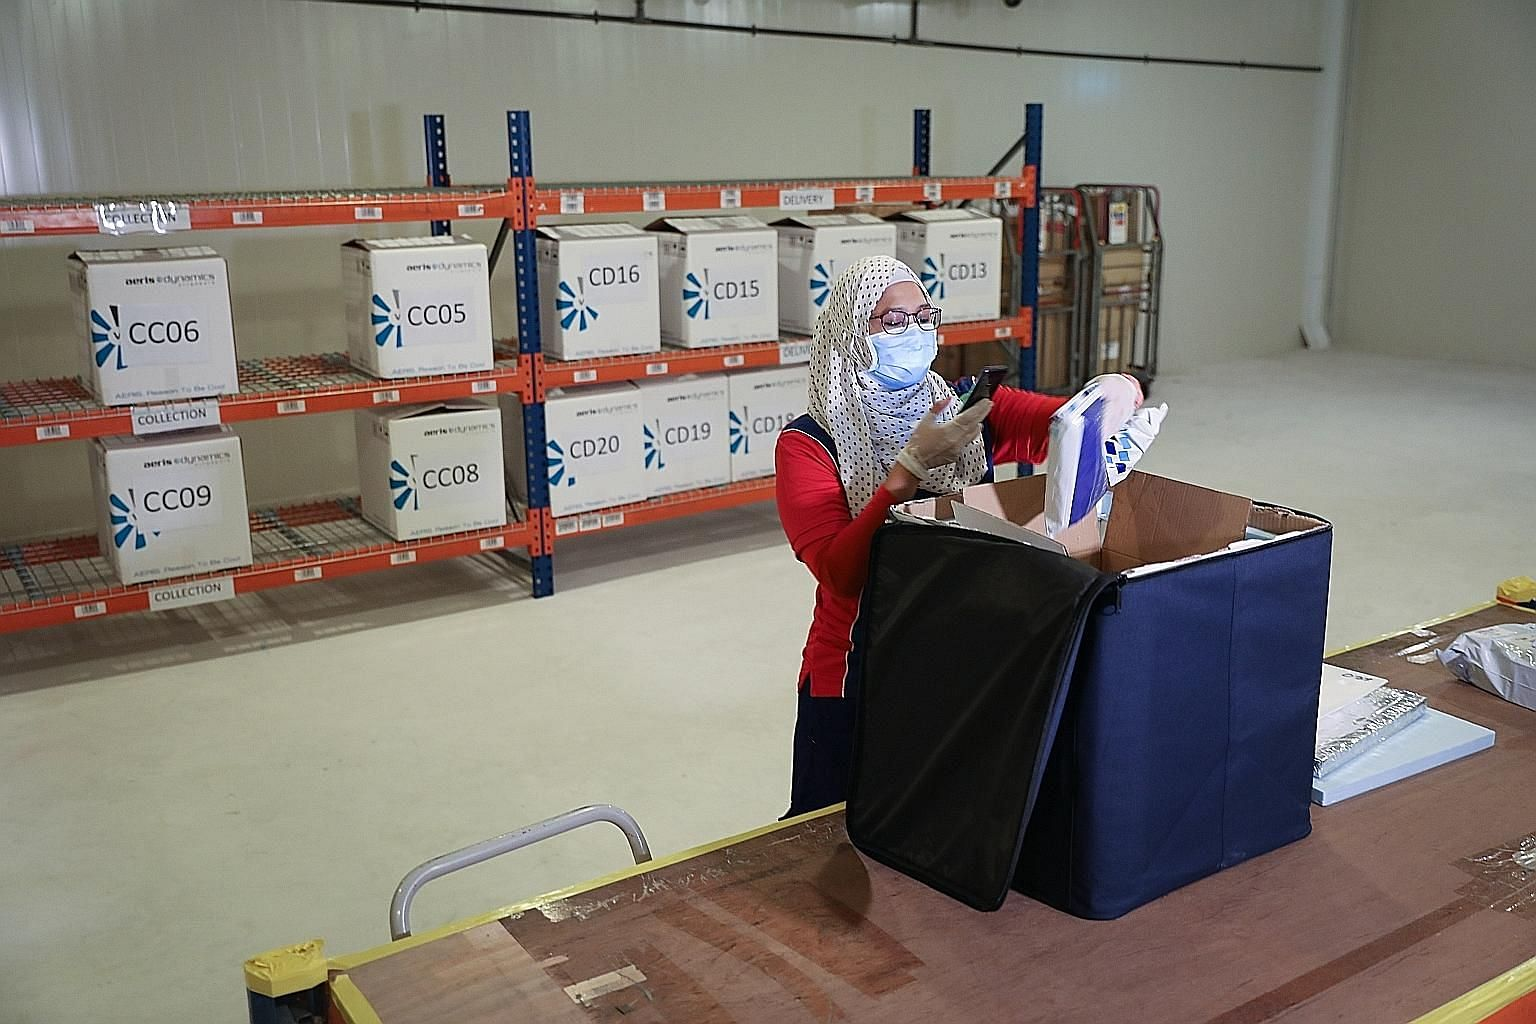 Speedpost courier Ismadiana Samsudin, 37, collecting a cold-chain box for delivery of medications that require refrigeration at SingPost's regional e-commerce logistics hub in Tampines last Friday.